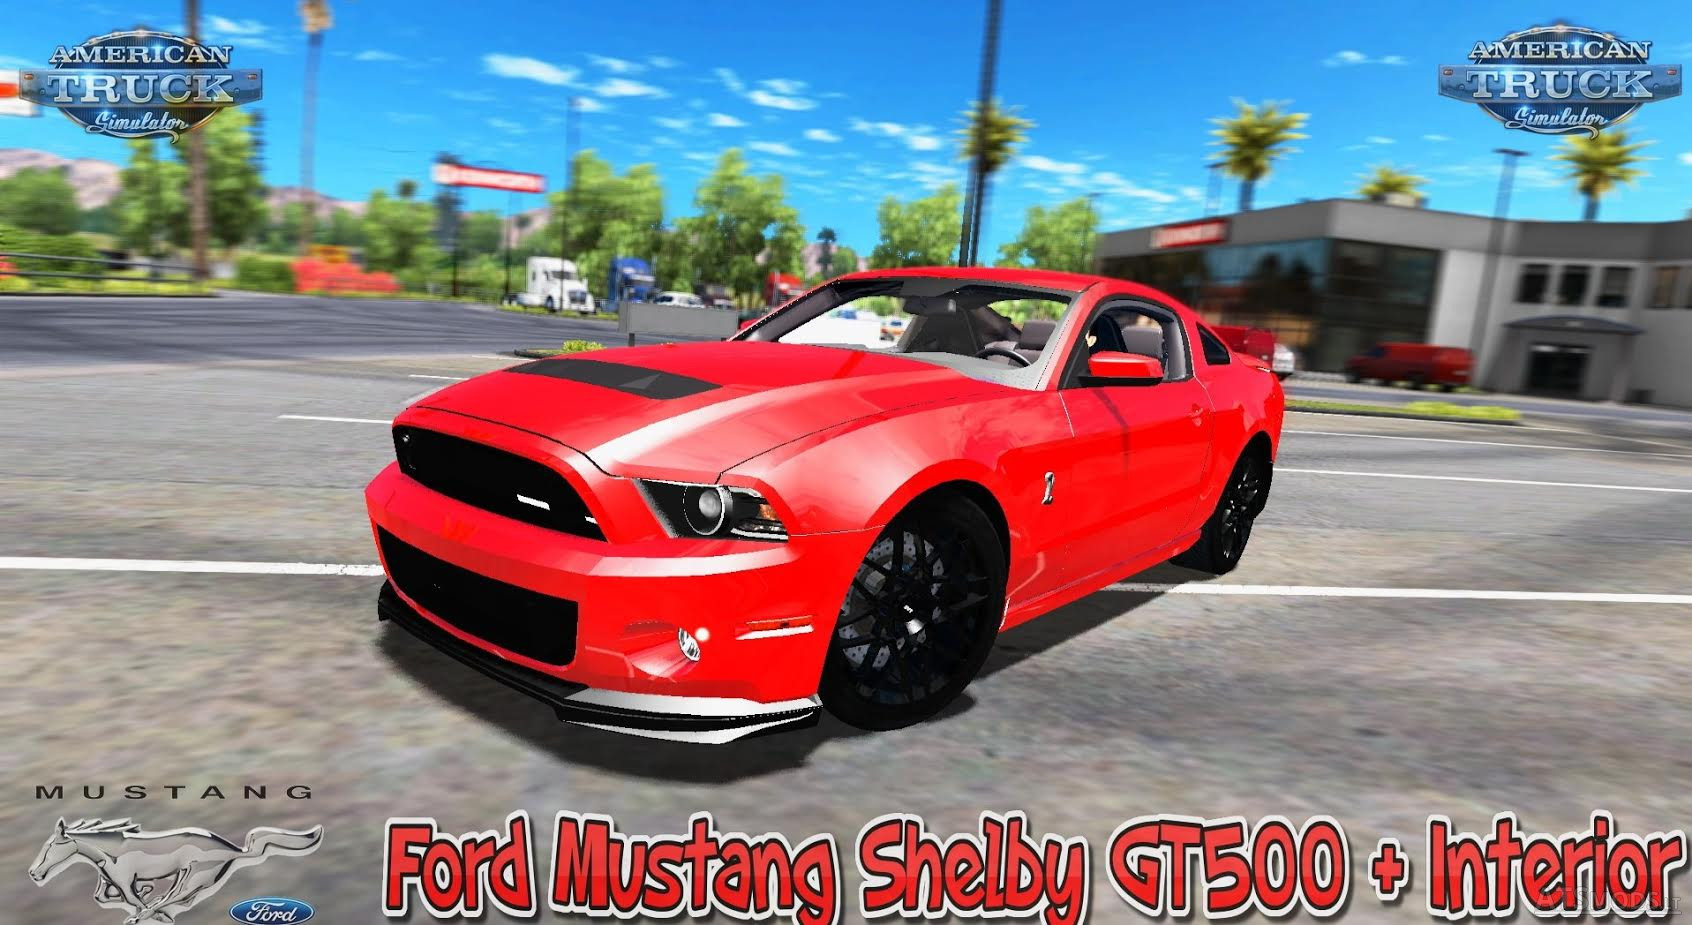 Ford Mustang Shelby GT500 + Interior v1 0 (v1 6 x) for ATS